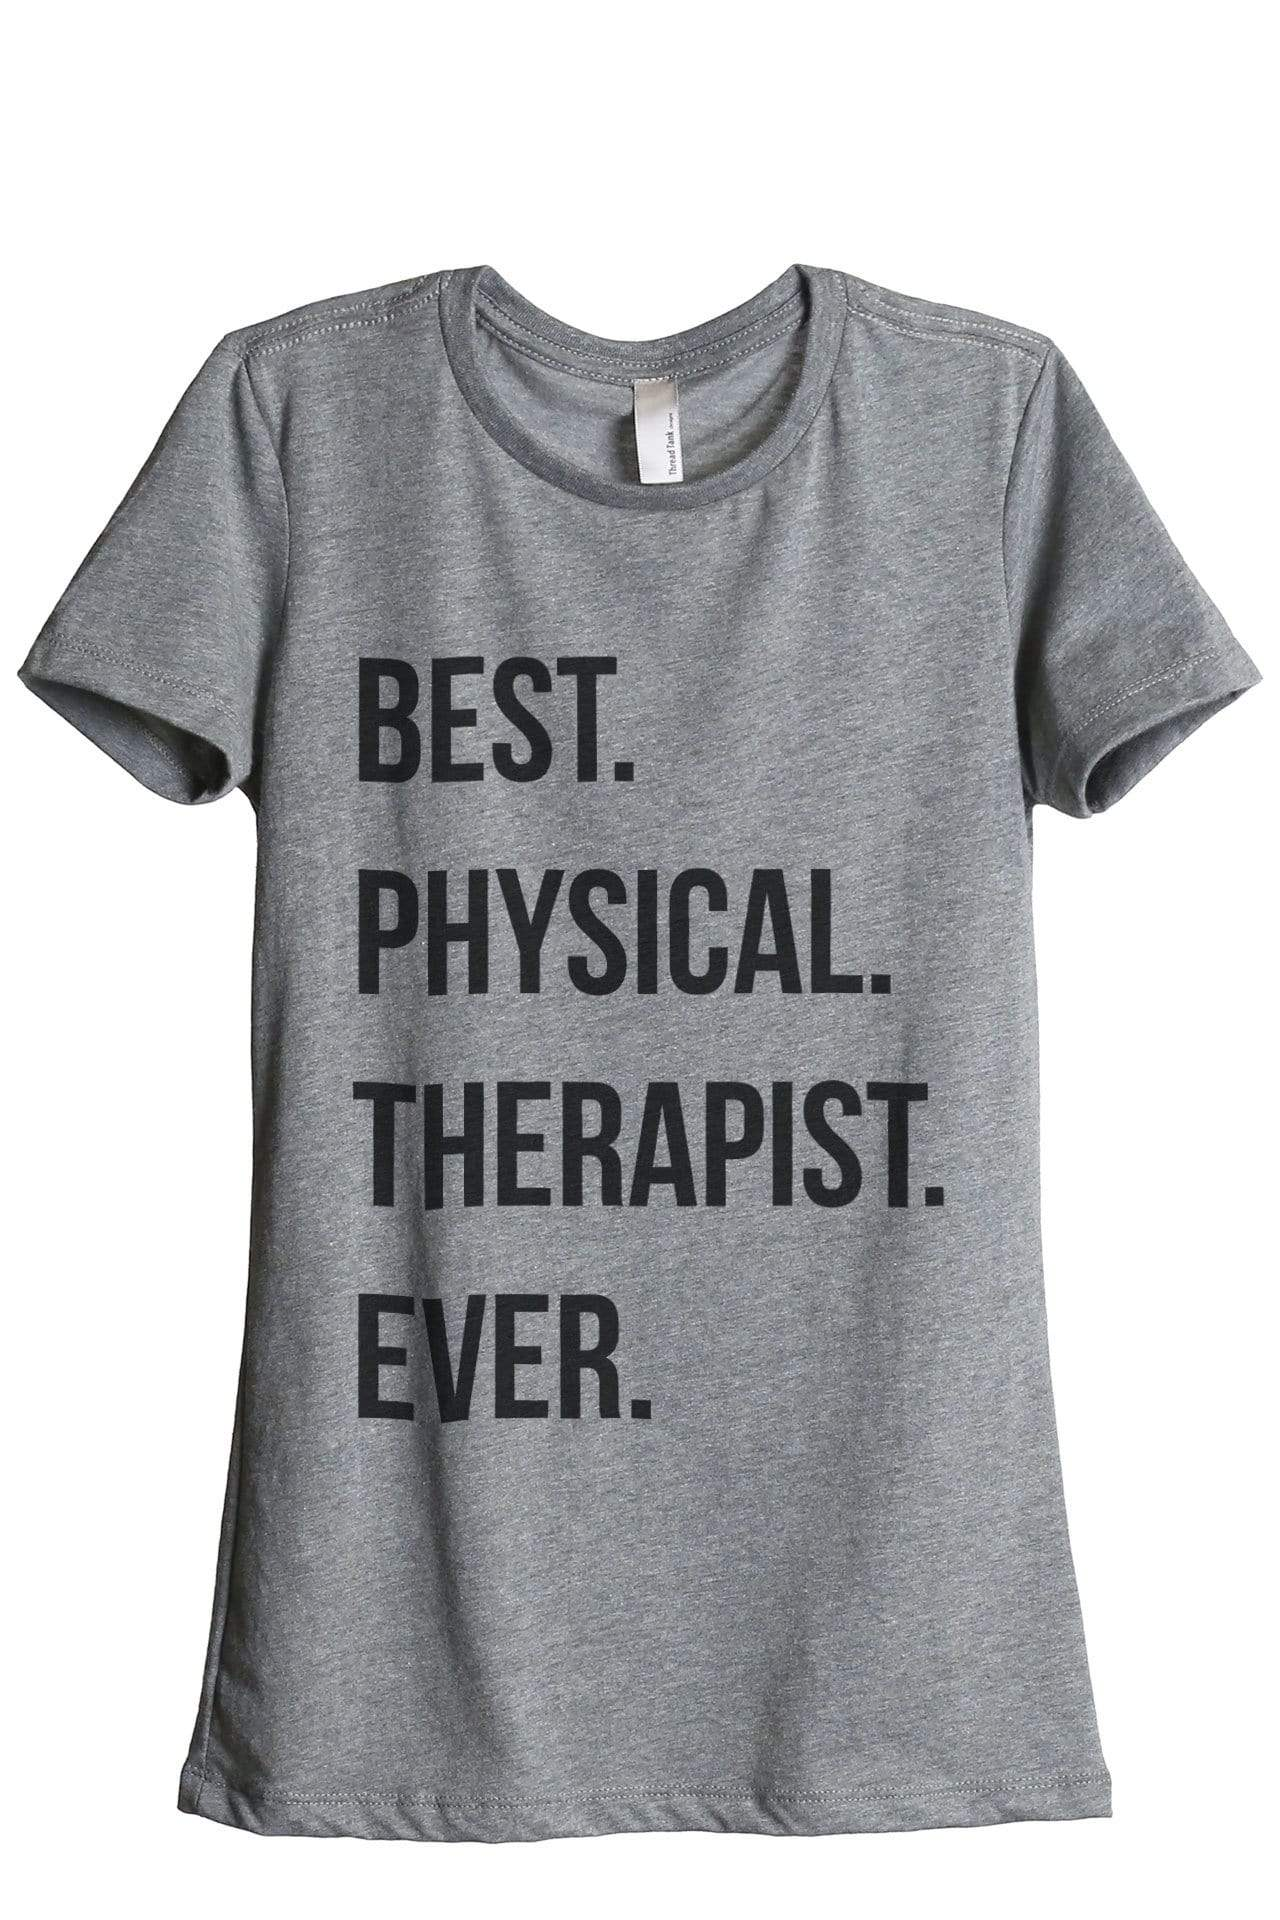 Best Physical Therapist Ever - Thread Tank | Stories You Can Wear | T-Shirts, Tank Tops and Sweatshirts